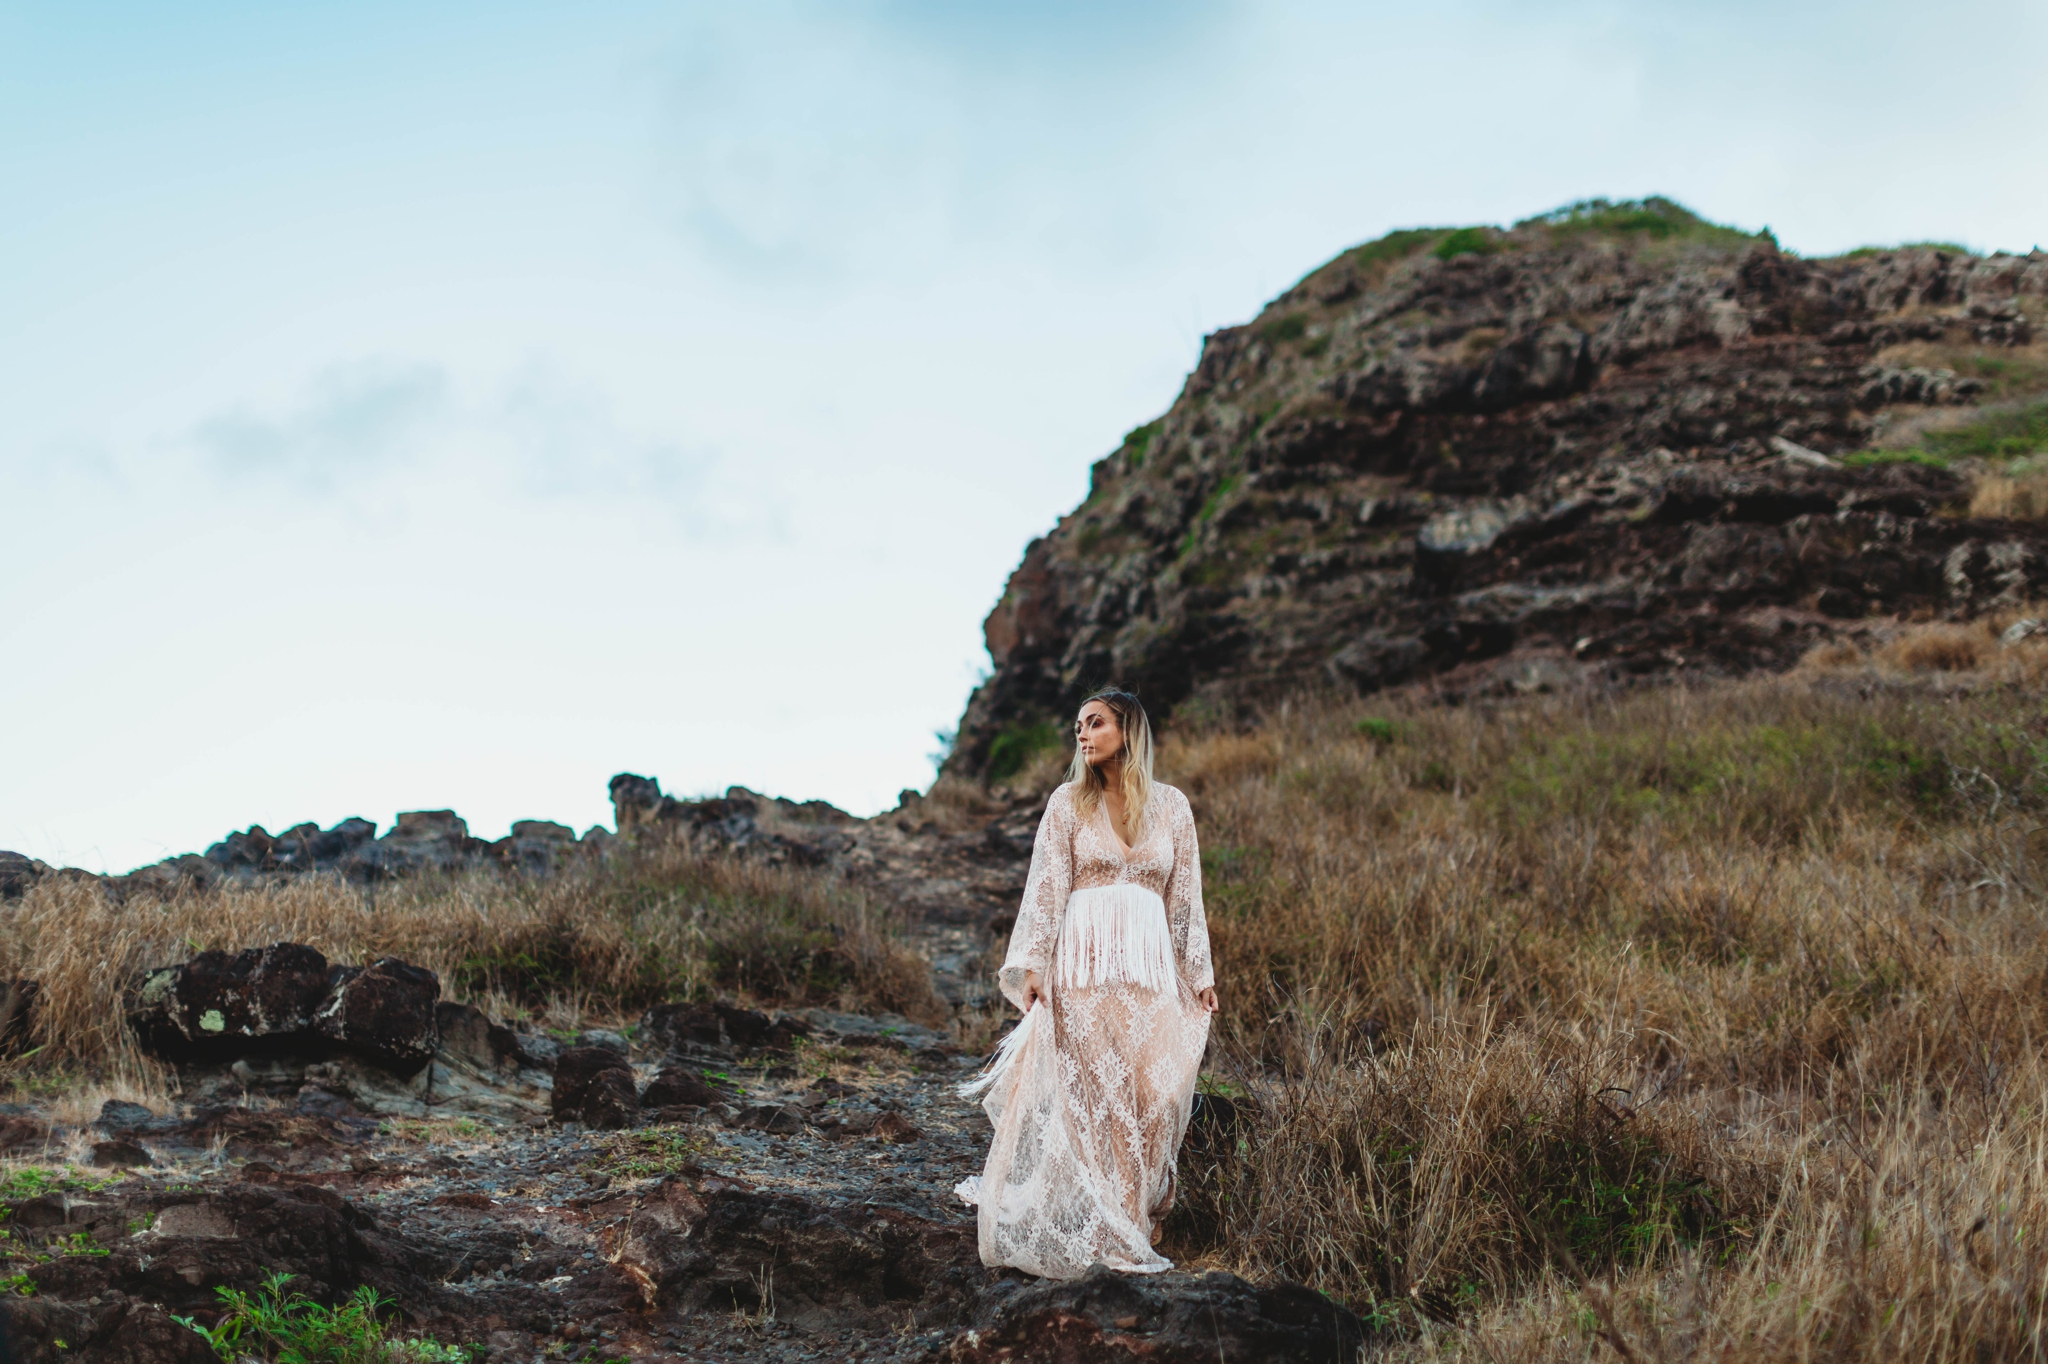 bride standing on top of a mountain - Elopement at Makapuu Lookout, Waimanalo, HI - Oahu Hawaii Engagement Photographer - Bride in a flowy fringe boho wedding dress - lanikai lookout - deutsche hochzeits fotografin in hawaii - smal1 - dark and moody - true to live